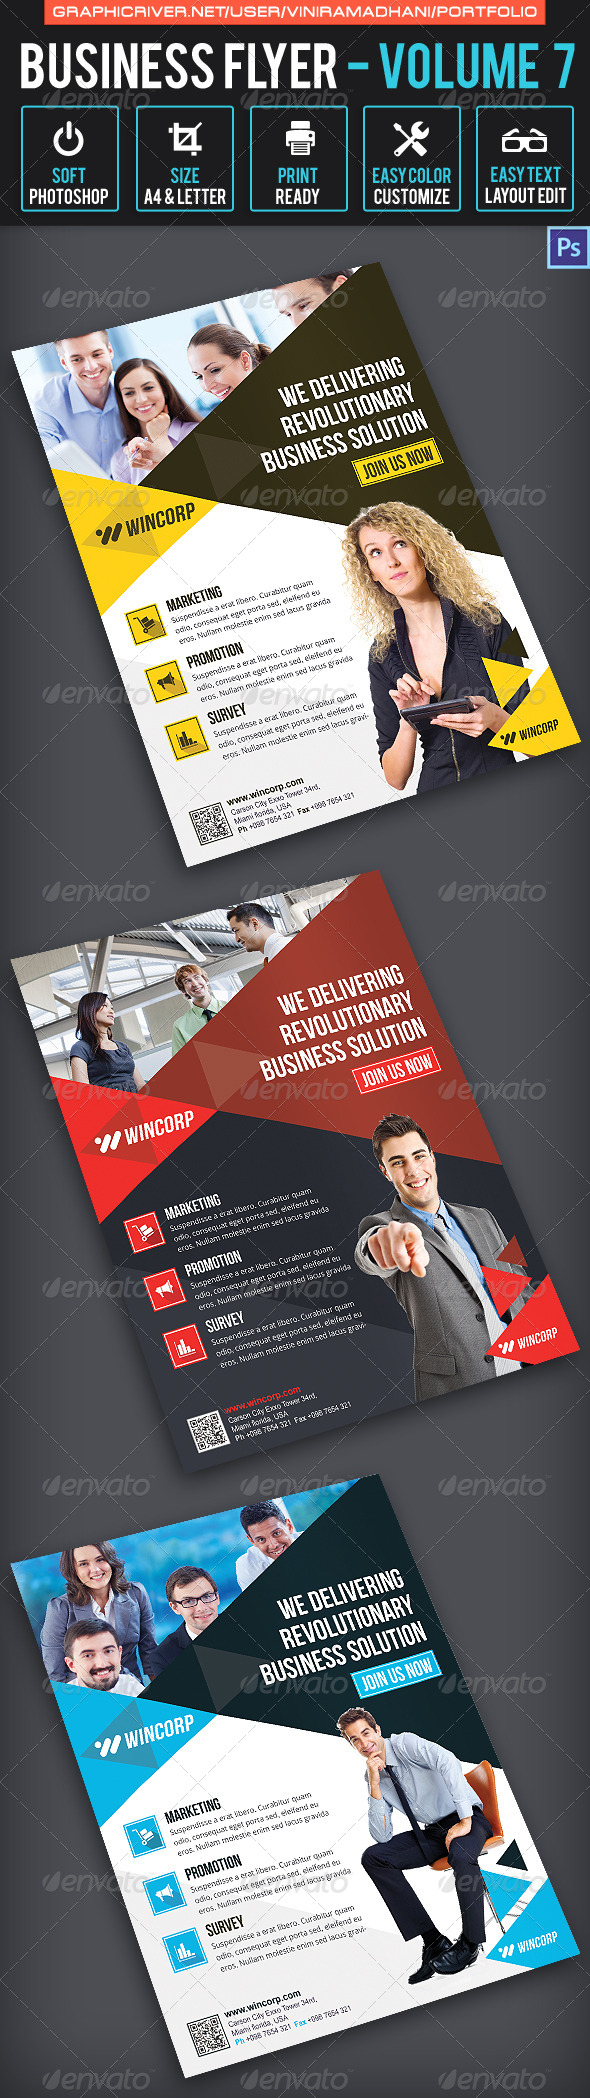 GraphicRiver Business Flyer Volume 7 6757152